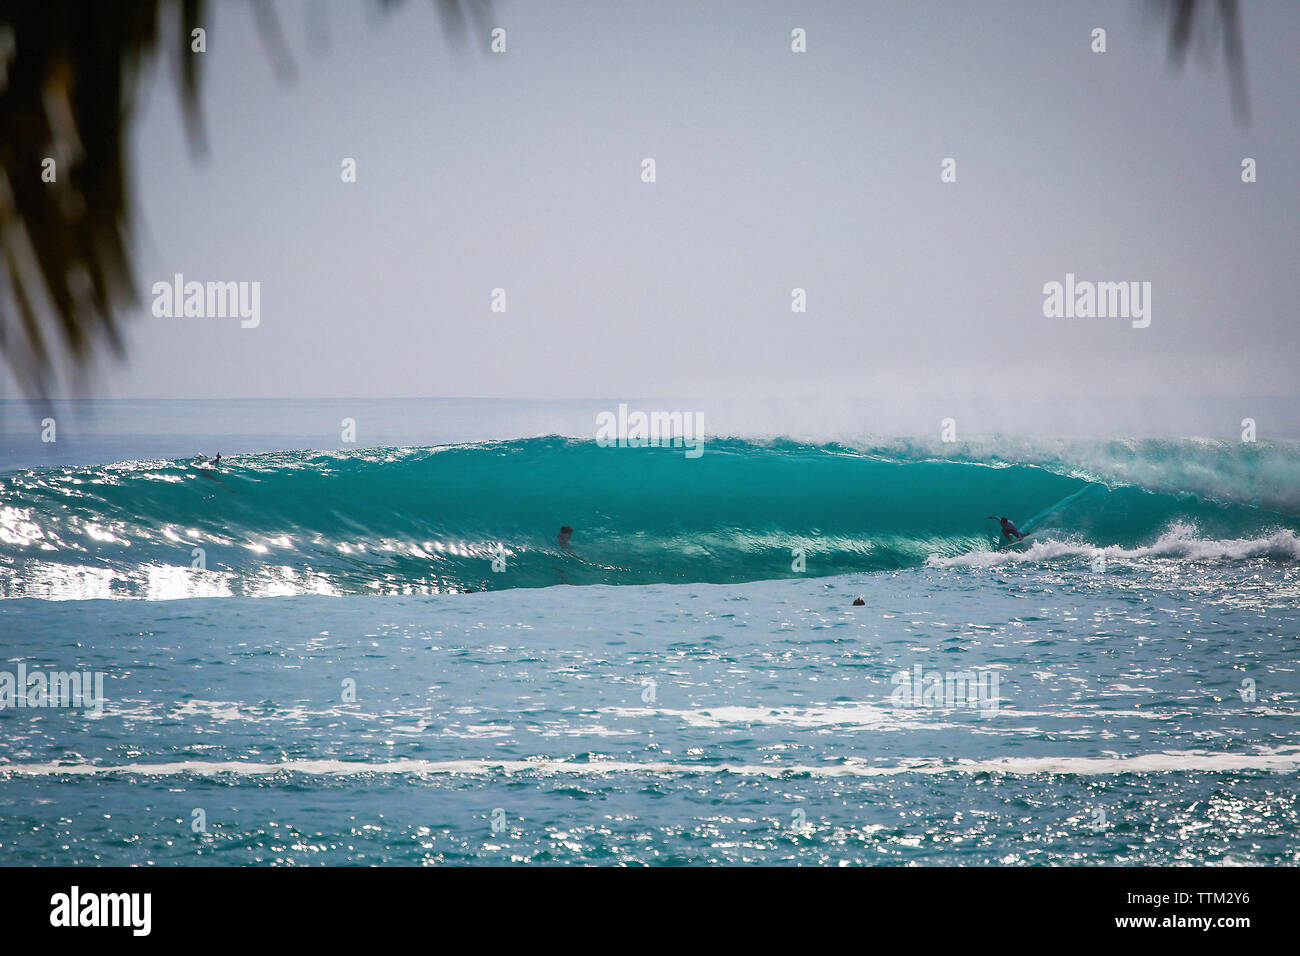 People surfing in sea at Mentawai Island against clear sky - Stock Image